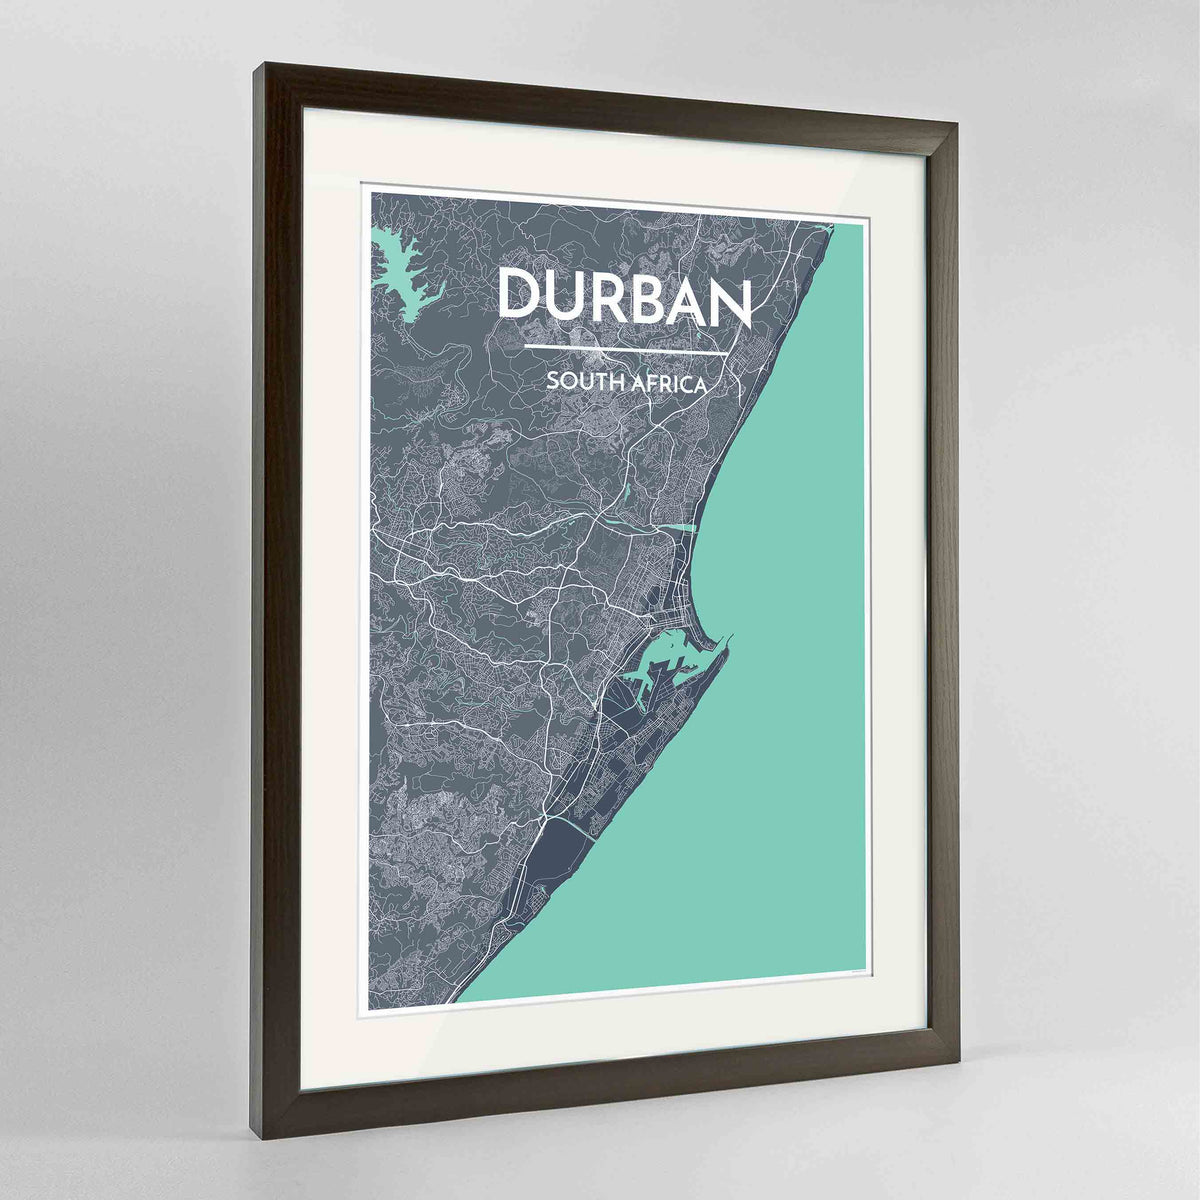 "Framed Durban Map Art Print 24x36"" Contemporary Walnut frame Point Two Design Group"